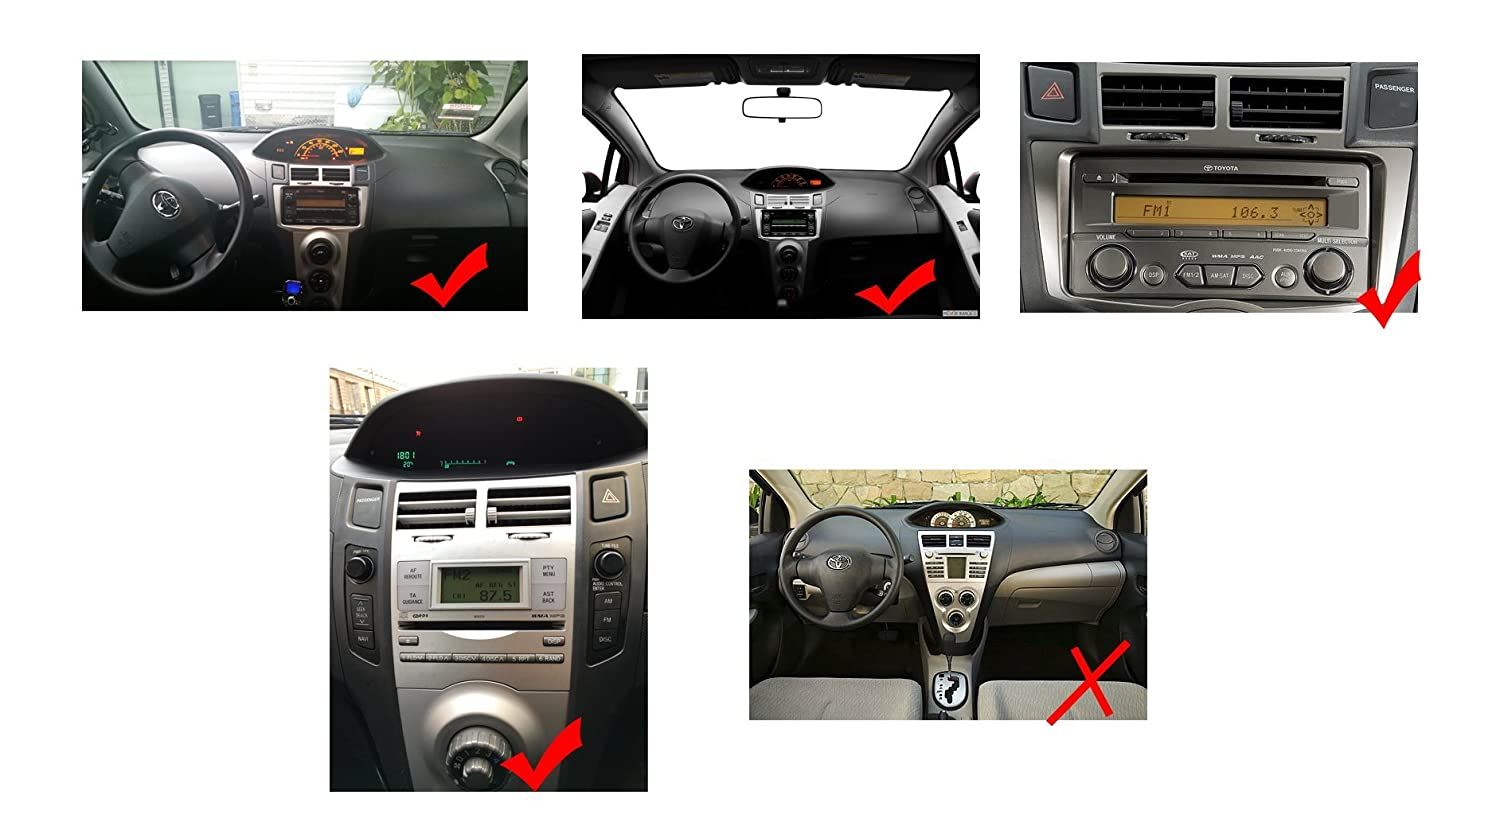 ... Player for Toyota Yaris 2007 2008 2009 2010 2011 Double Din 6.2 Inch Touch Screen TFT LCD Monitor In-dash DVD Video Receiver Car GPS Navigation System ...